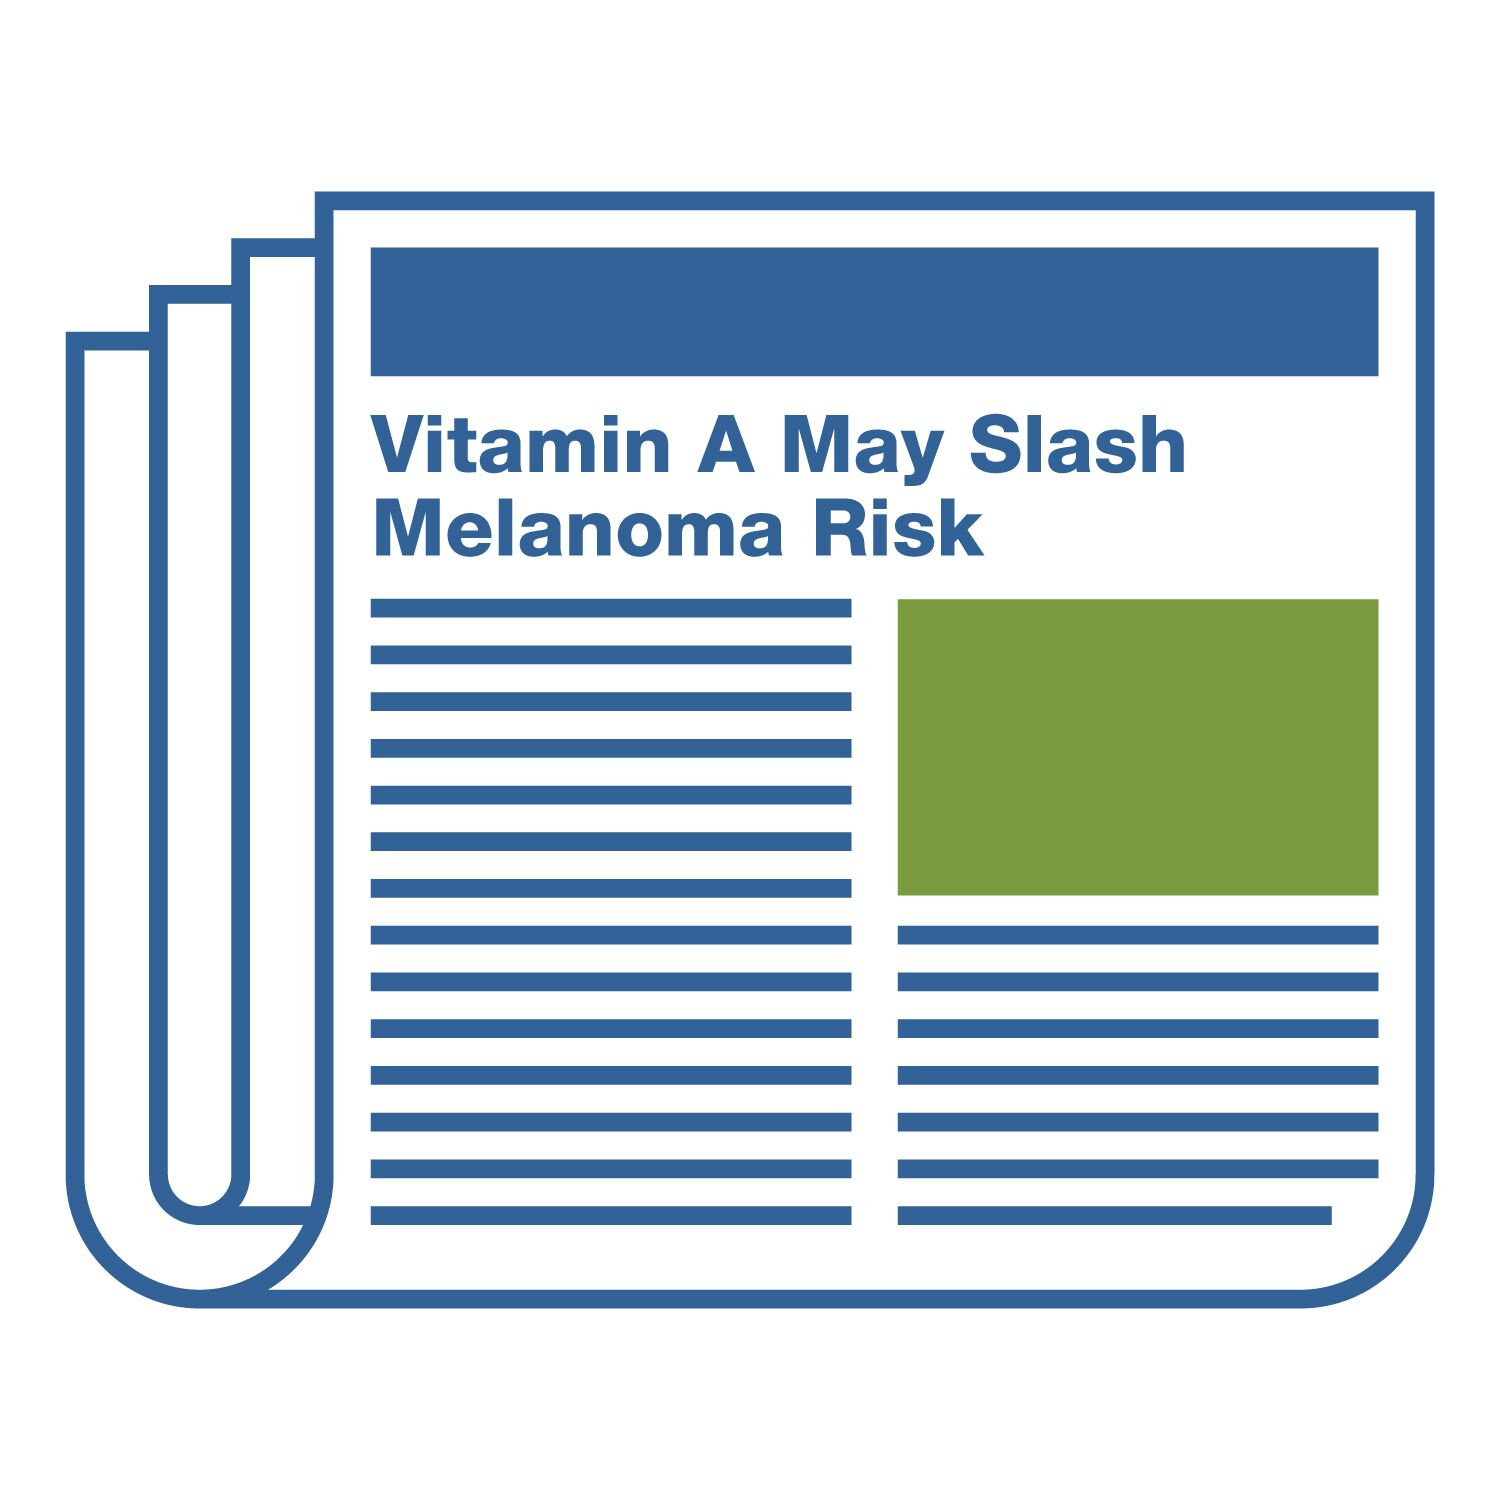 Headline: Vitamin A May Slash Melanoma Risk